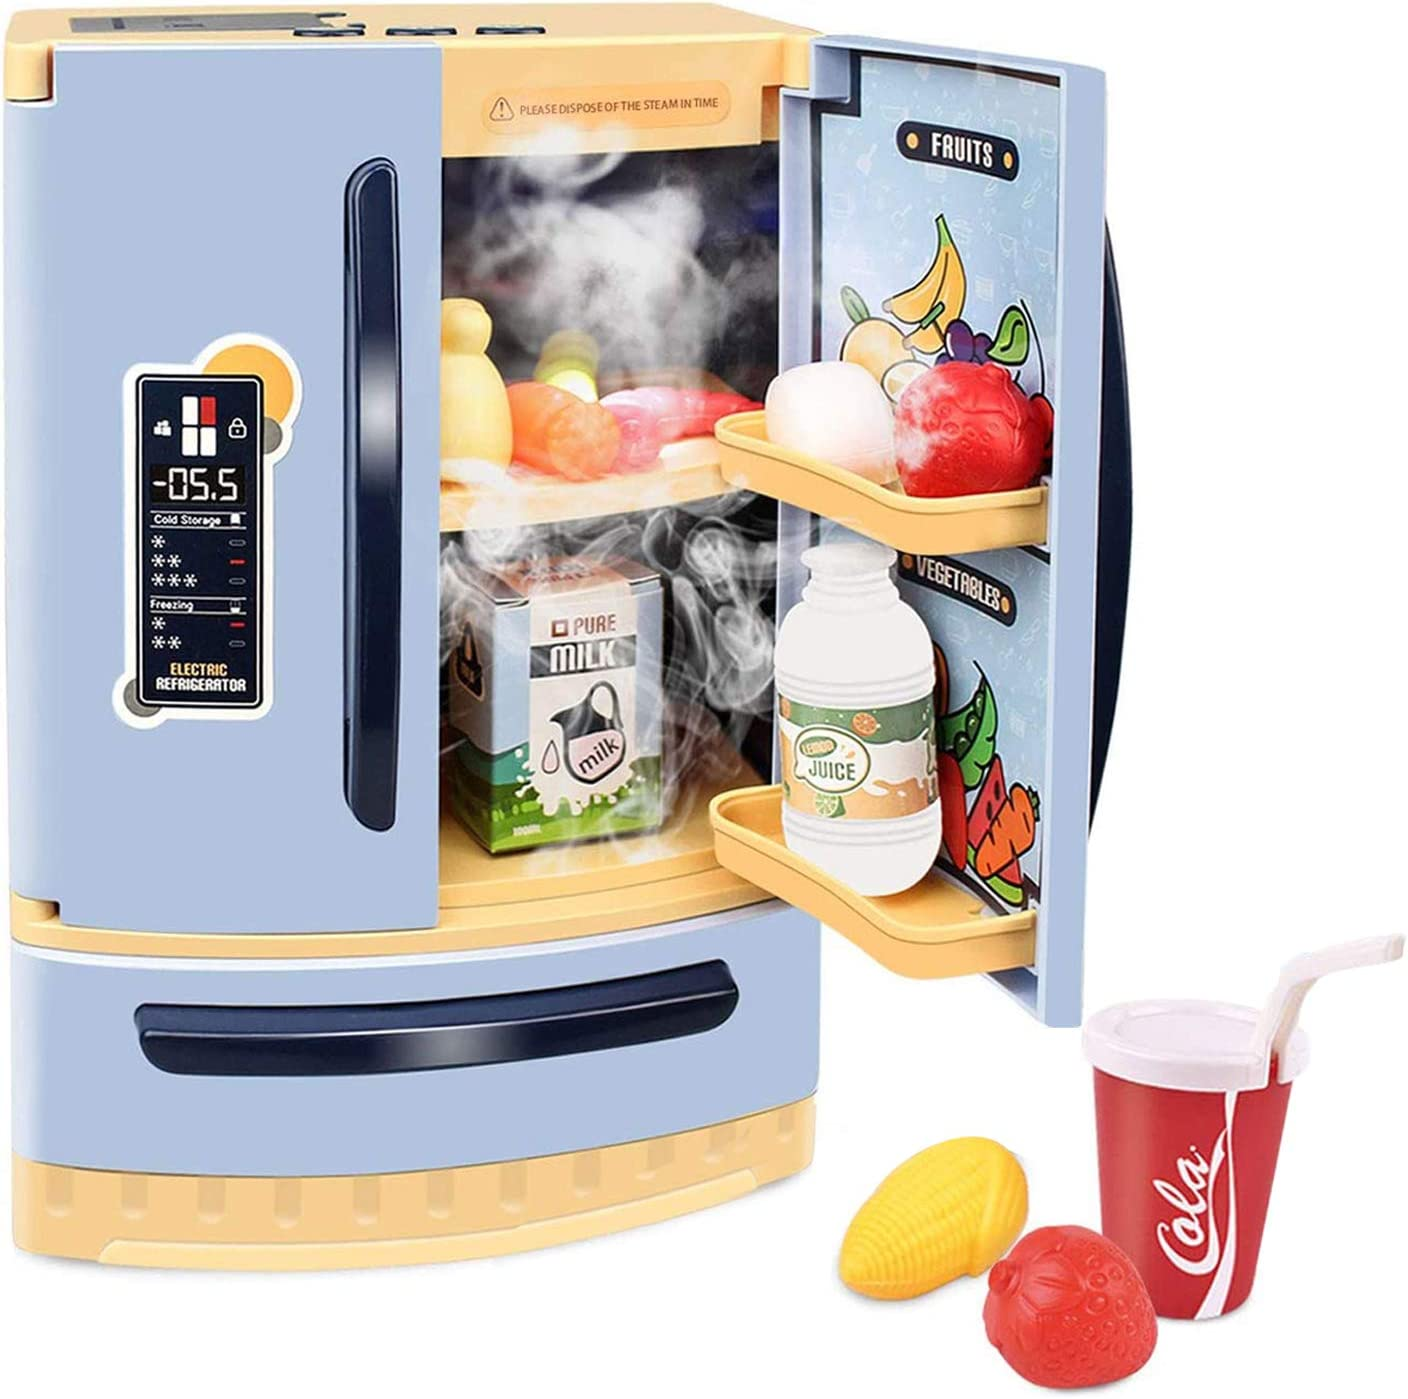 GrowthPic Kids Kitchen Toy Refrigerator, Pretend Play Mini Kitchen Set with Music and Spraying Function, Play Food Accessories for Toddlers, Boys and Girls